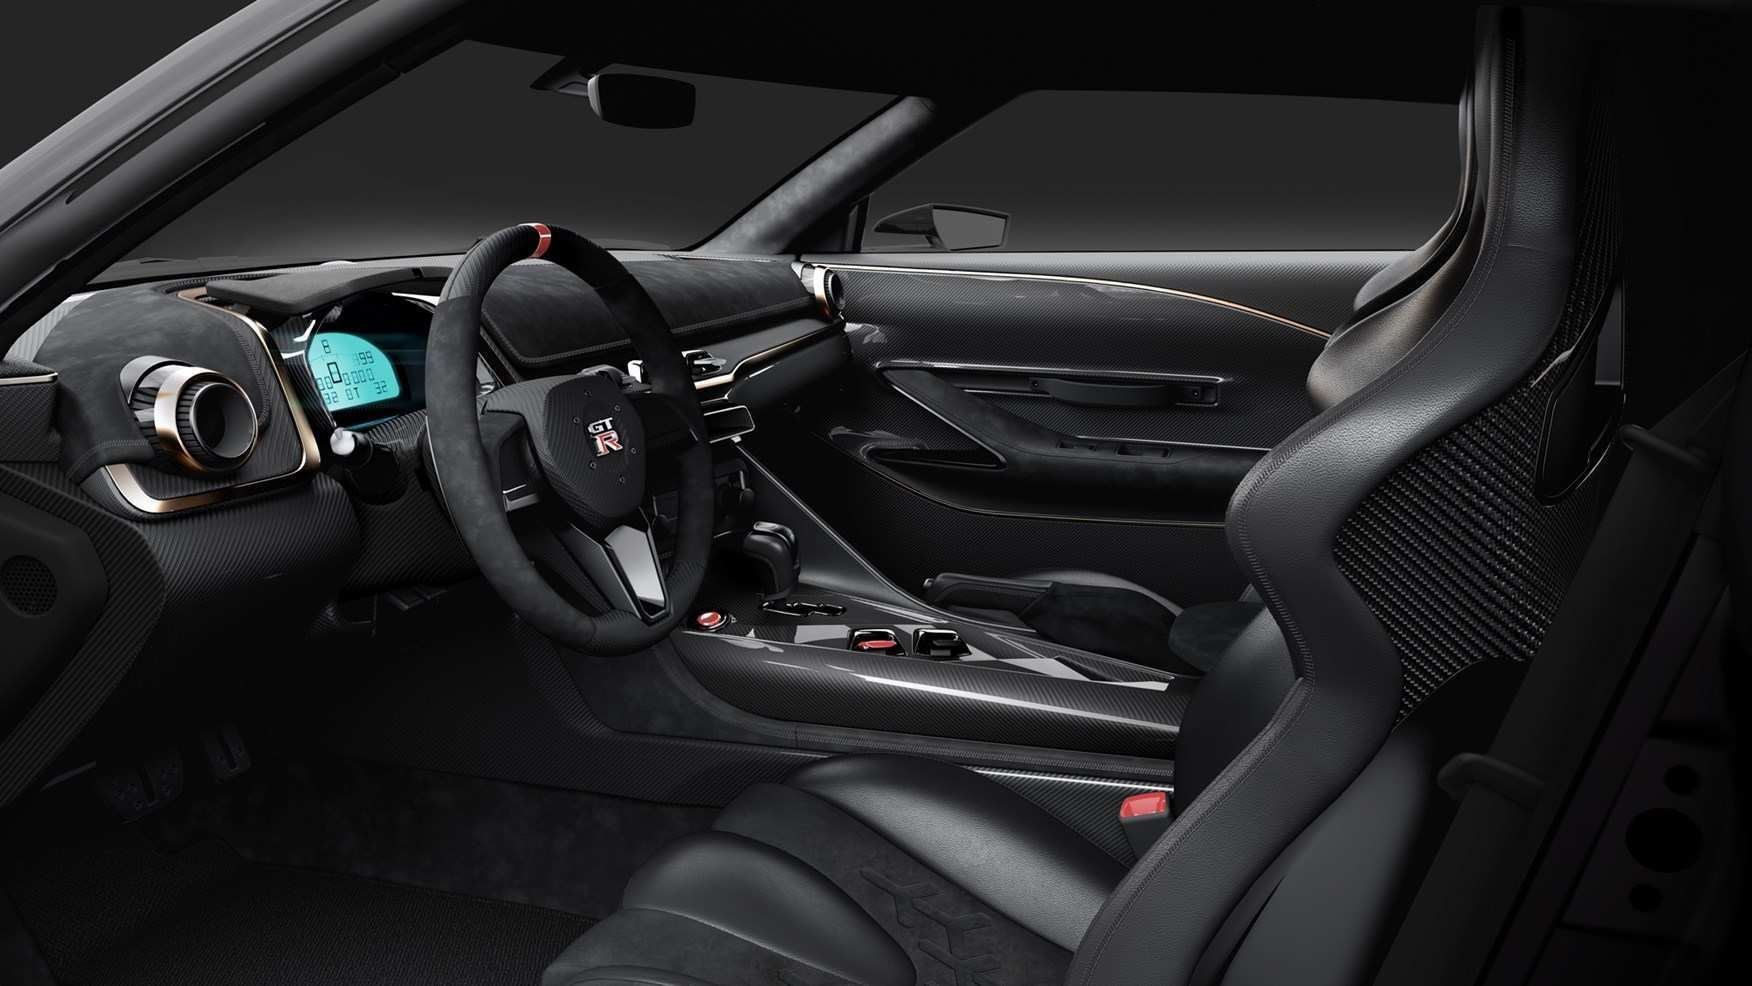 98 All New Nissan Gtr 2020 Interior Concept